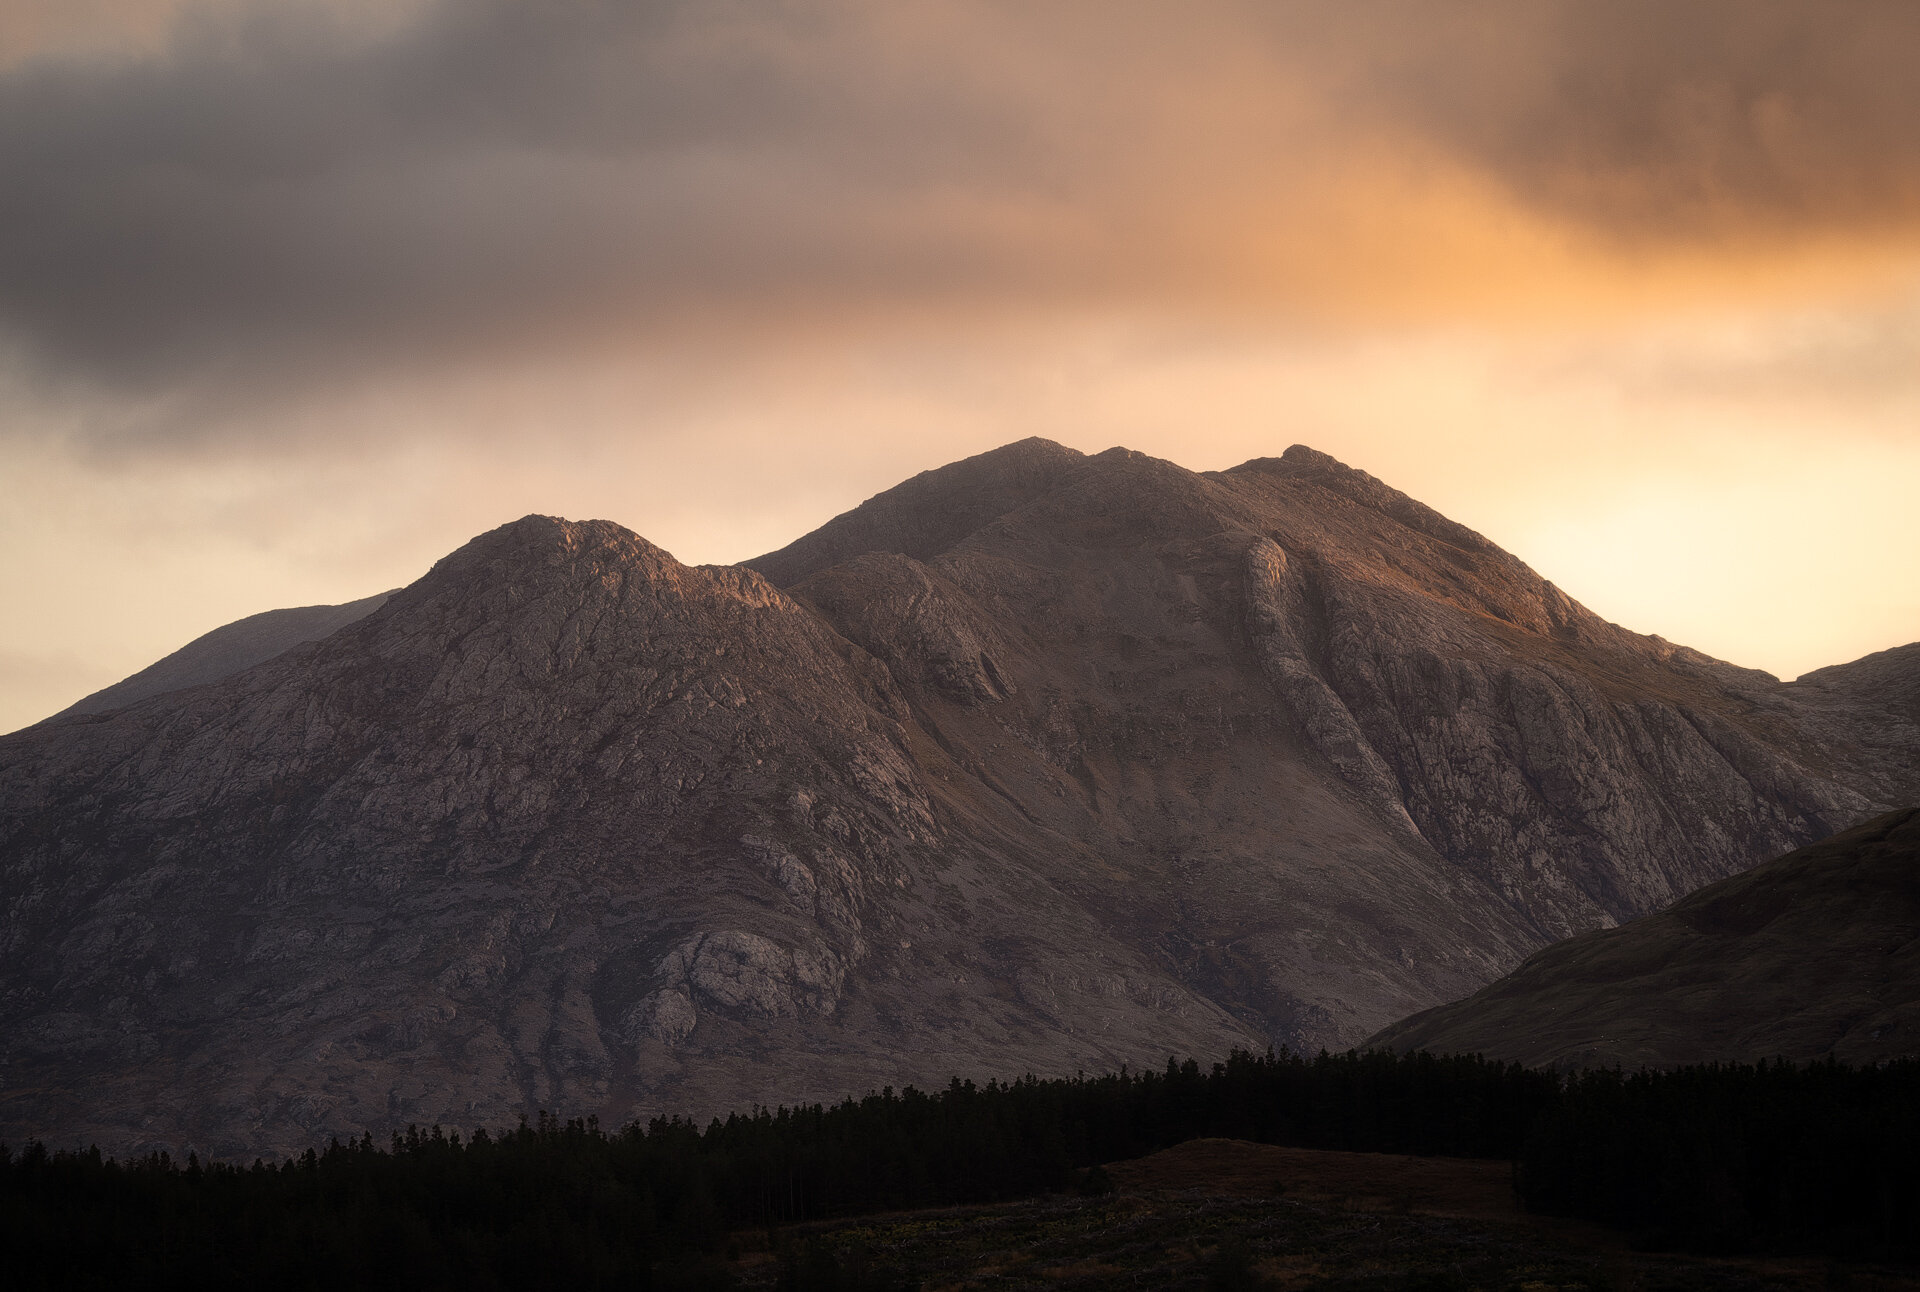 Golden light hitting the peaks of mountains in the west of Ireland. This was shot handheld at 100mm. Tack sharp! See below for the wide angle shot of this scene.